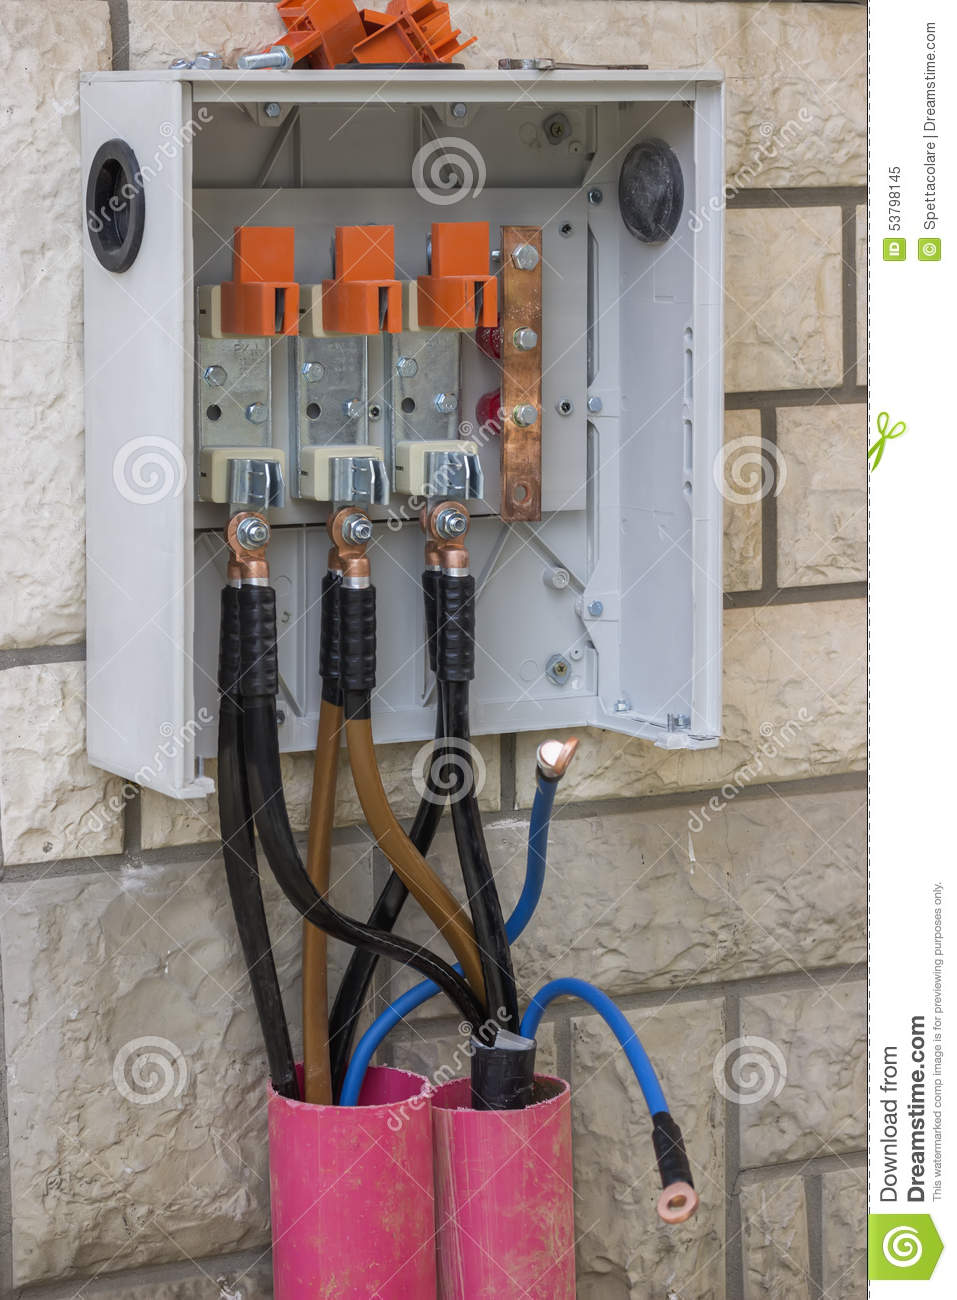 3 Phase High Voltage Breaker Box Stock Image Image Of